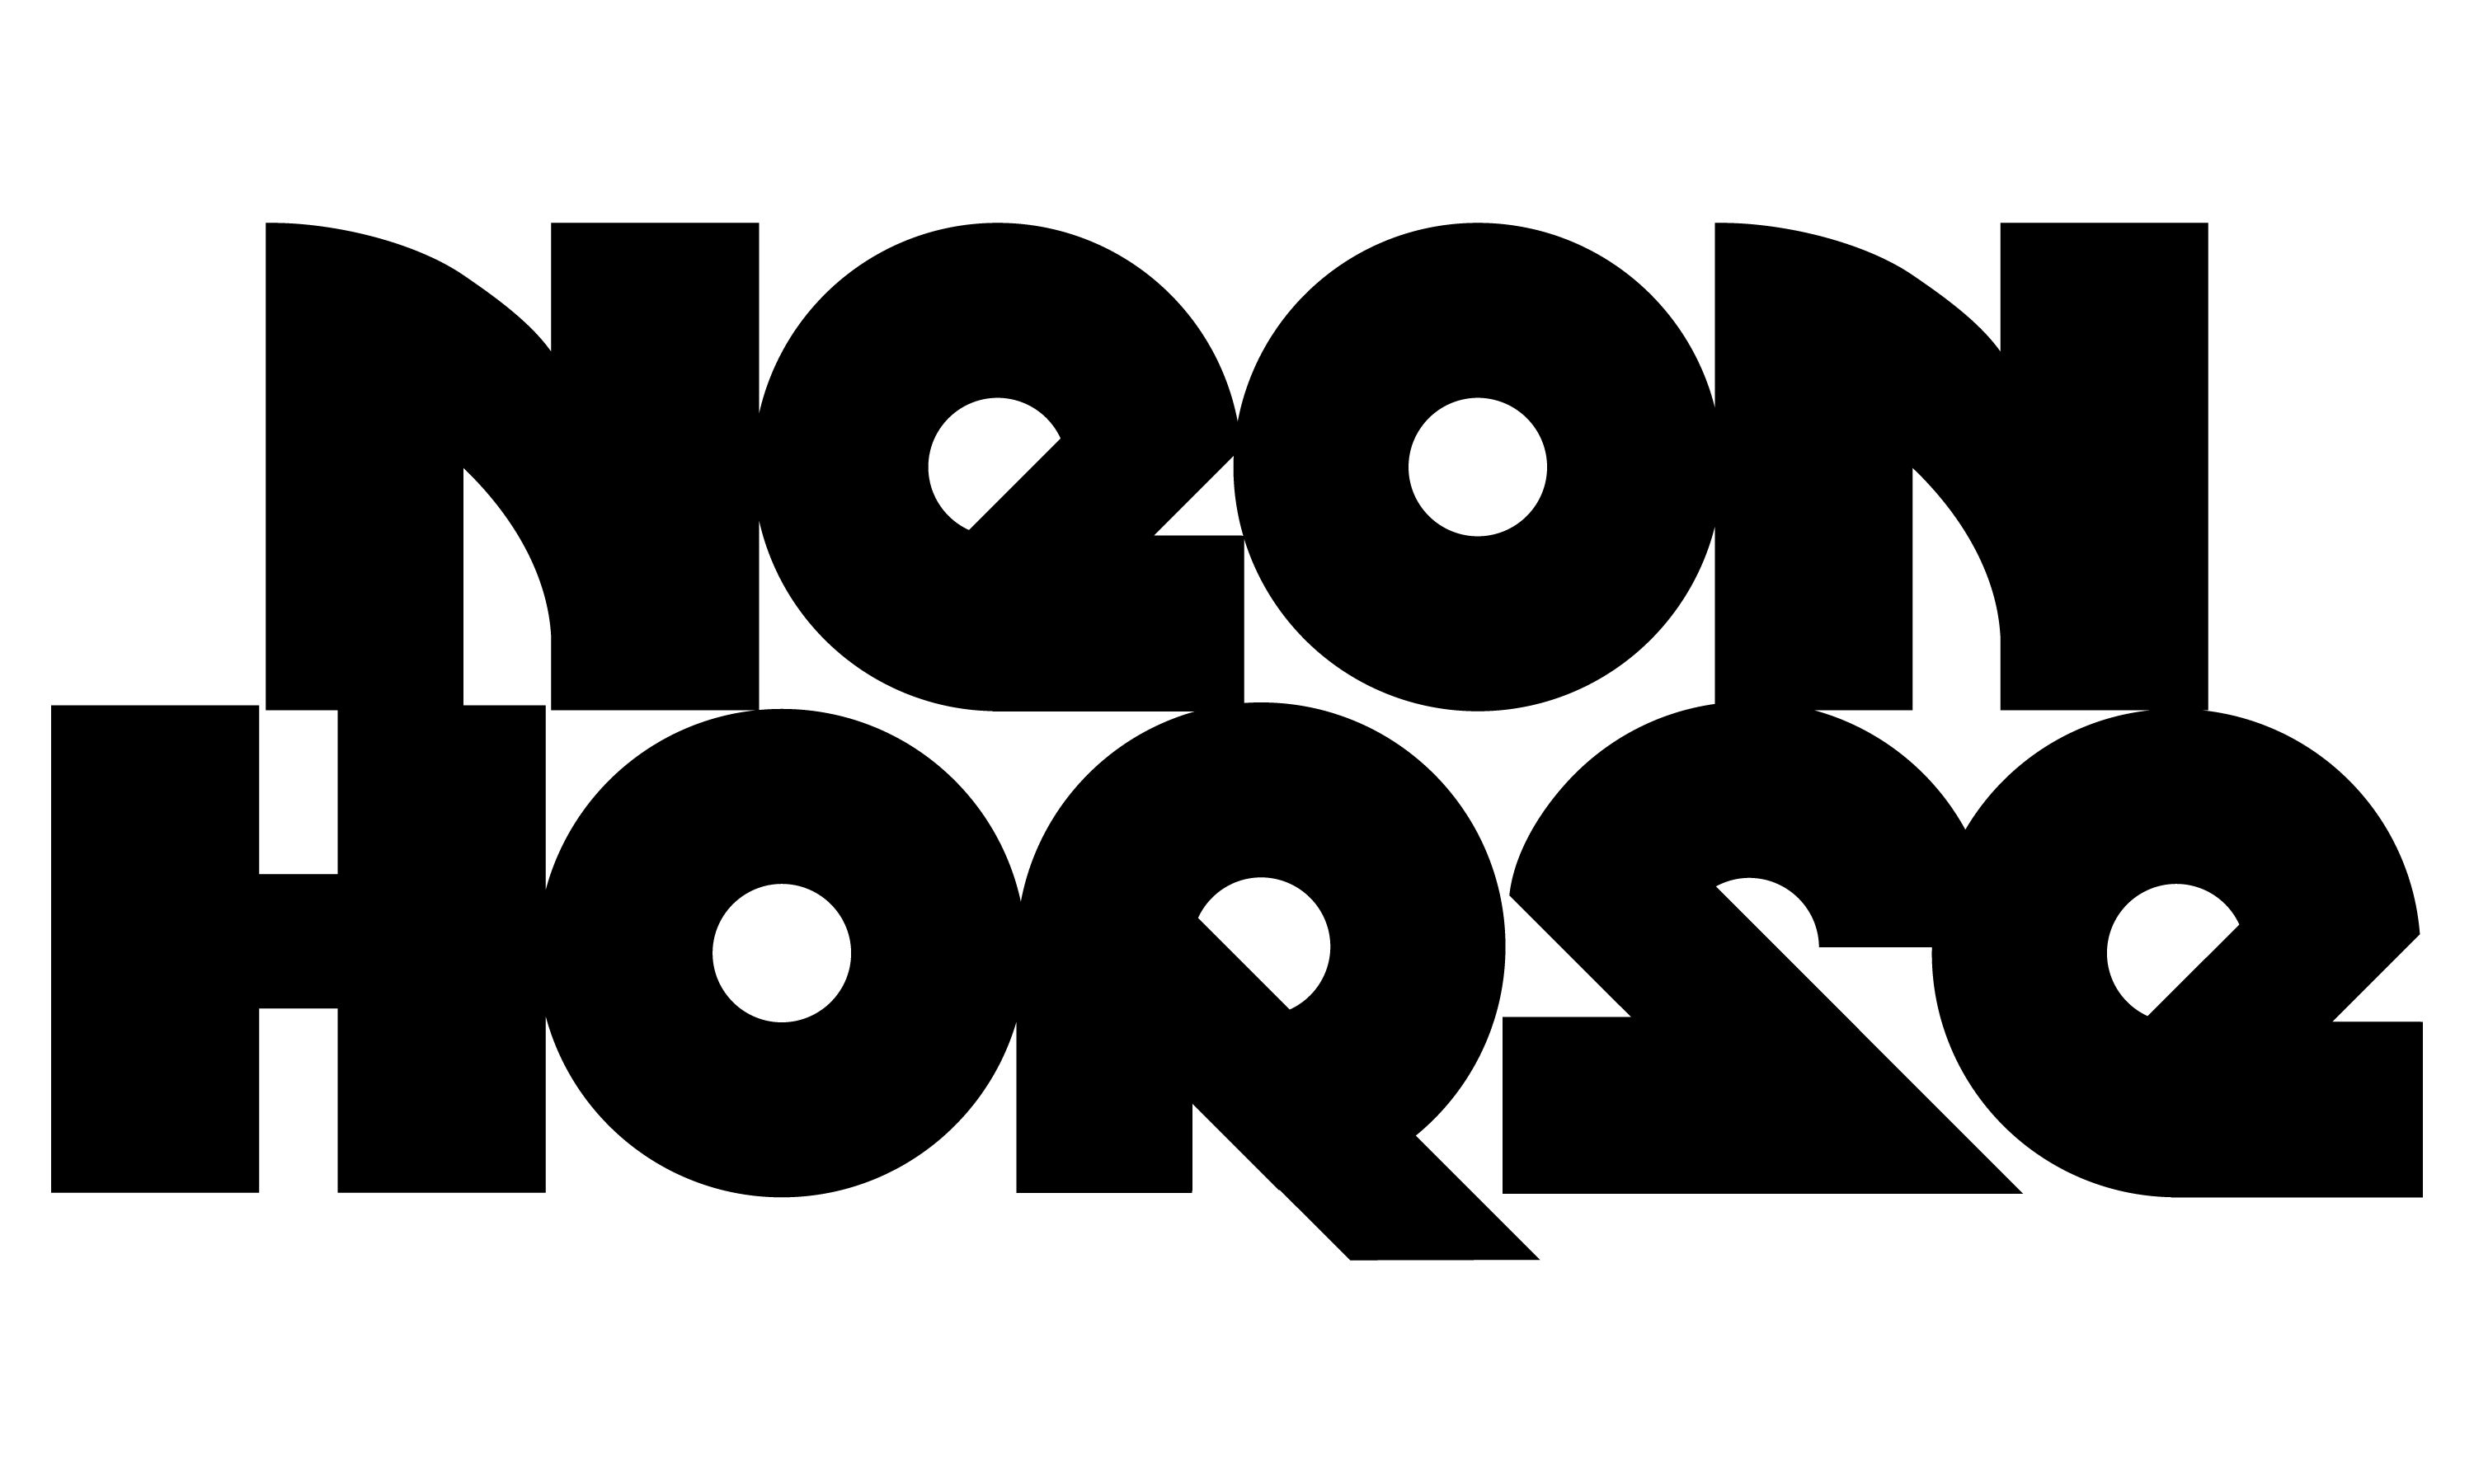 Neon Horse band logo | Inspiration - Christian Band Logos